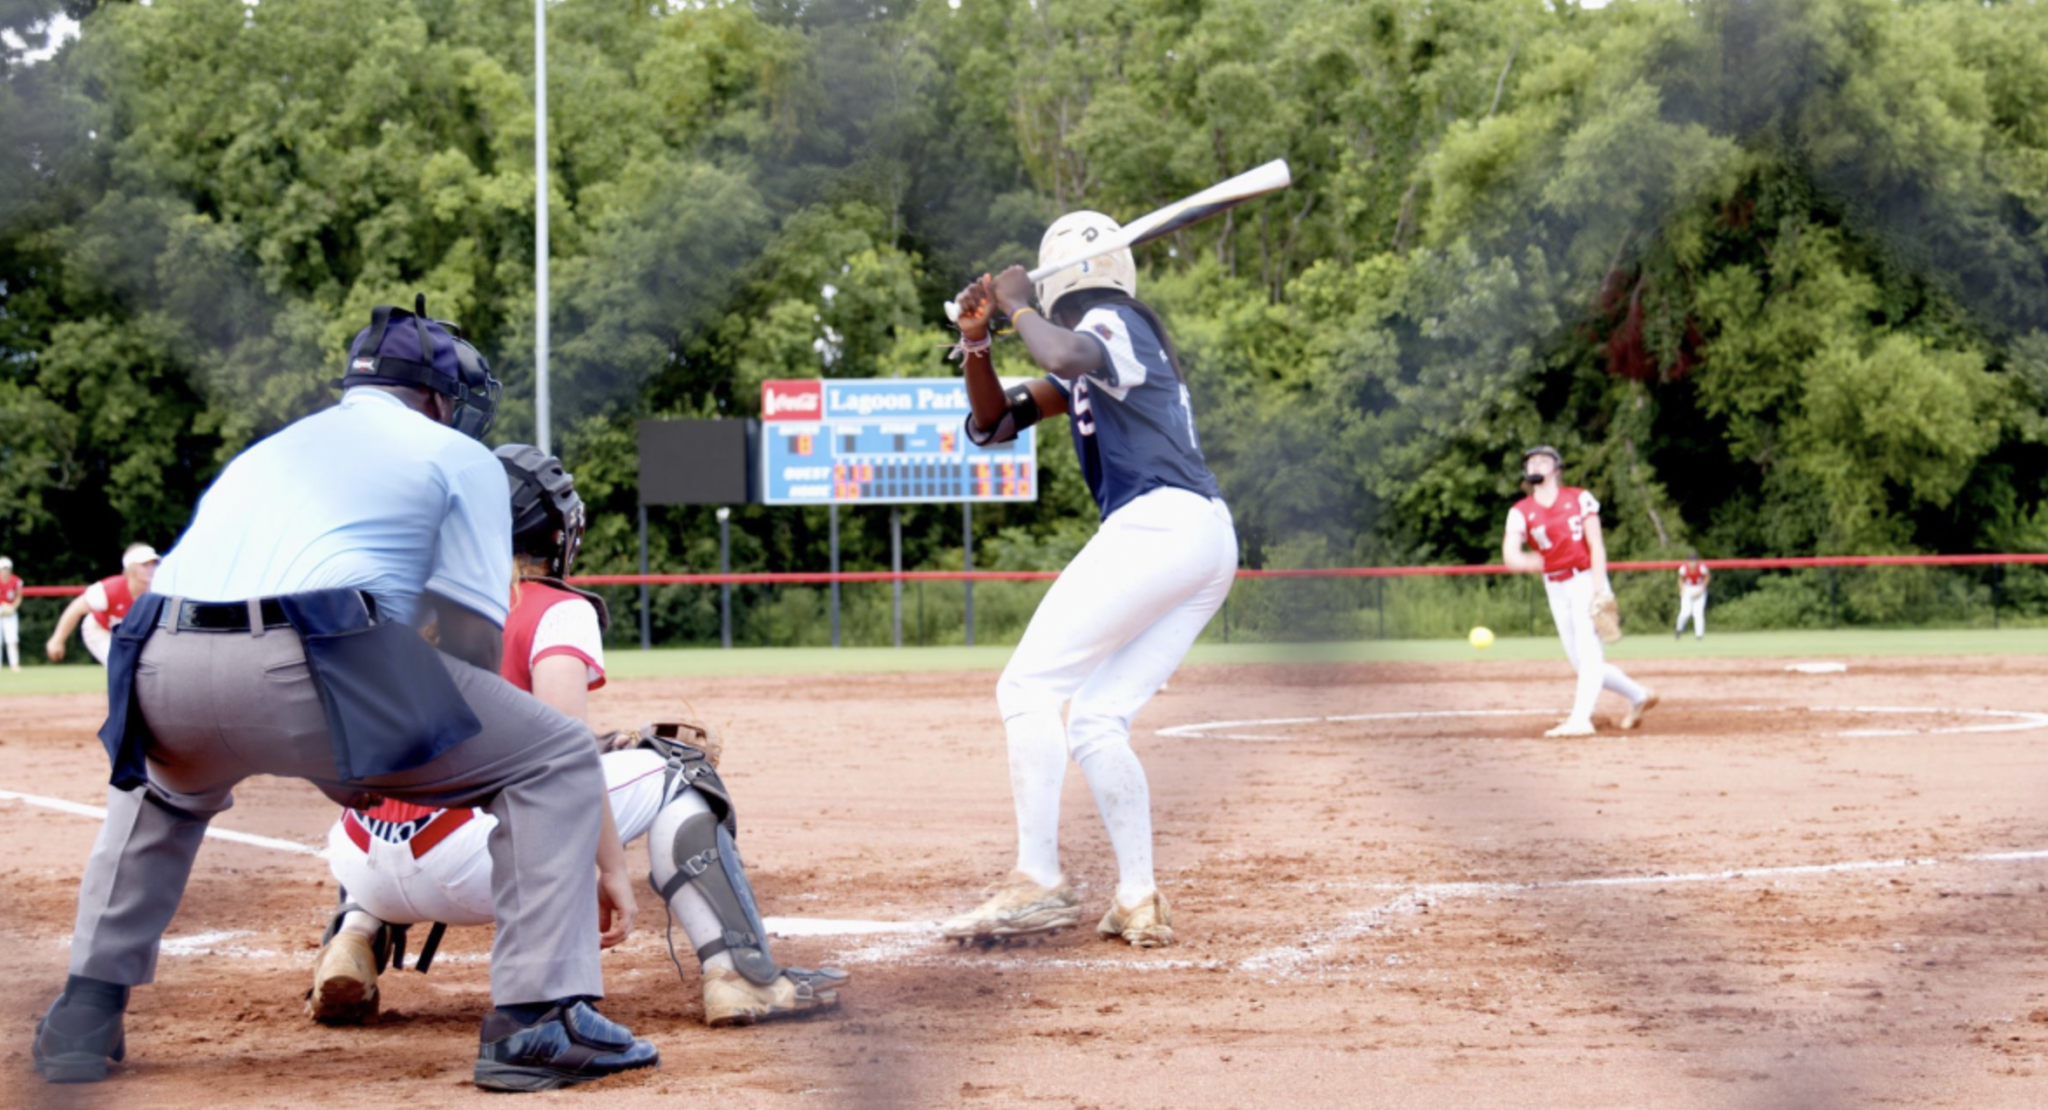 Back to normalcy. AHSAA held its first in-person Summer Conference and North-South All-Star games since 2019.